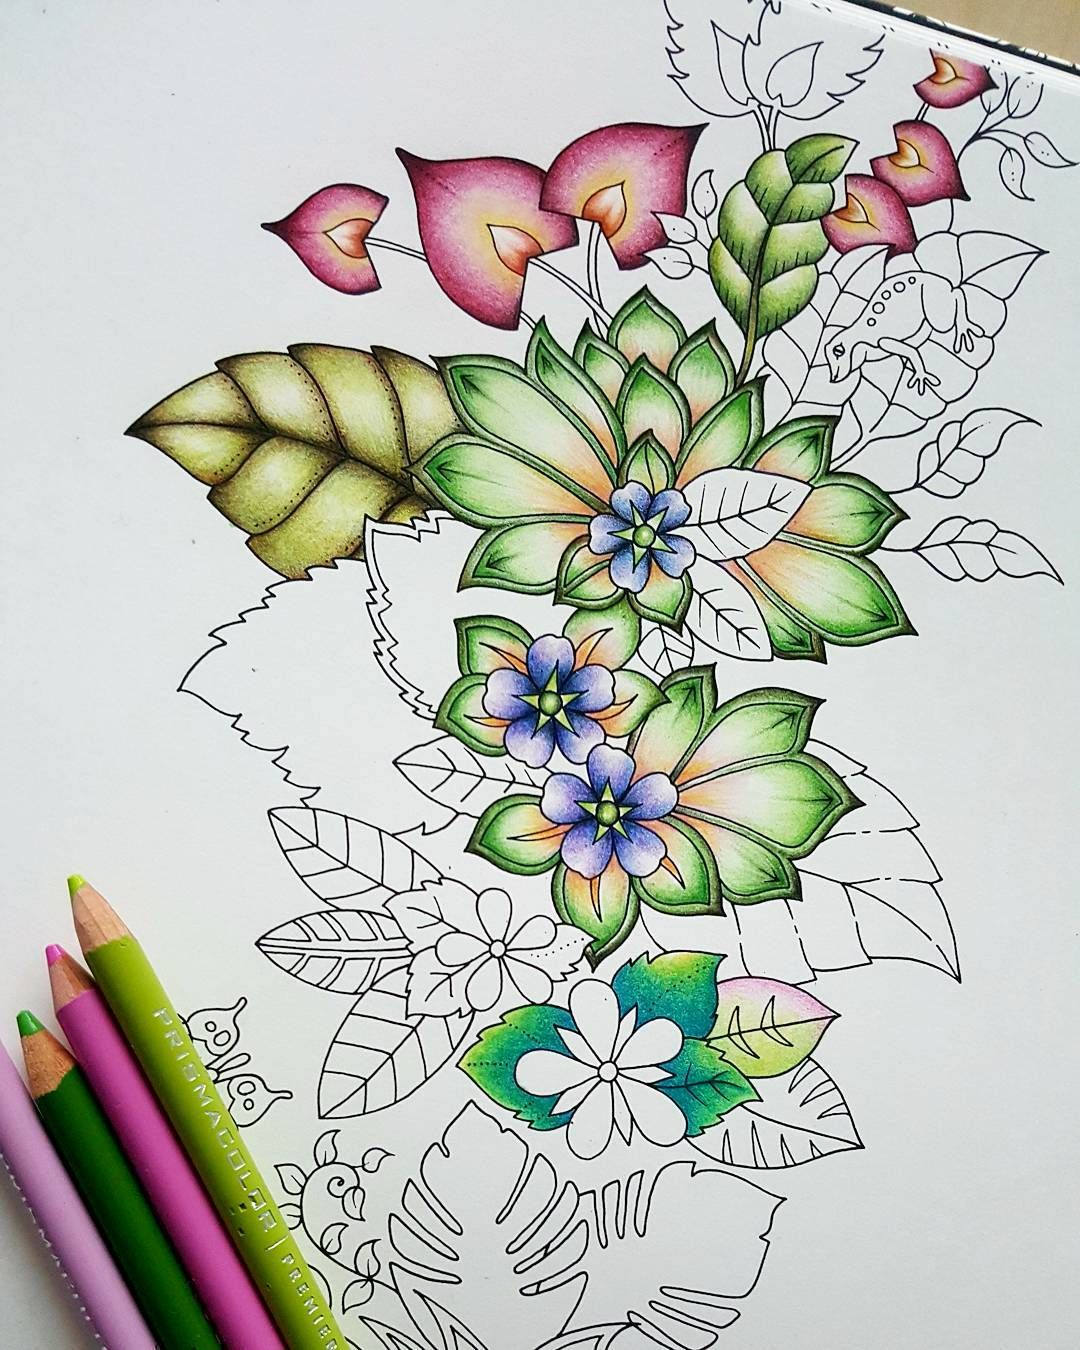 160 Coloring In Magical Jungle Ideas Johanna Basford Coloring Johanna Basford Coloring Book Magical Jungle Johanna Basford